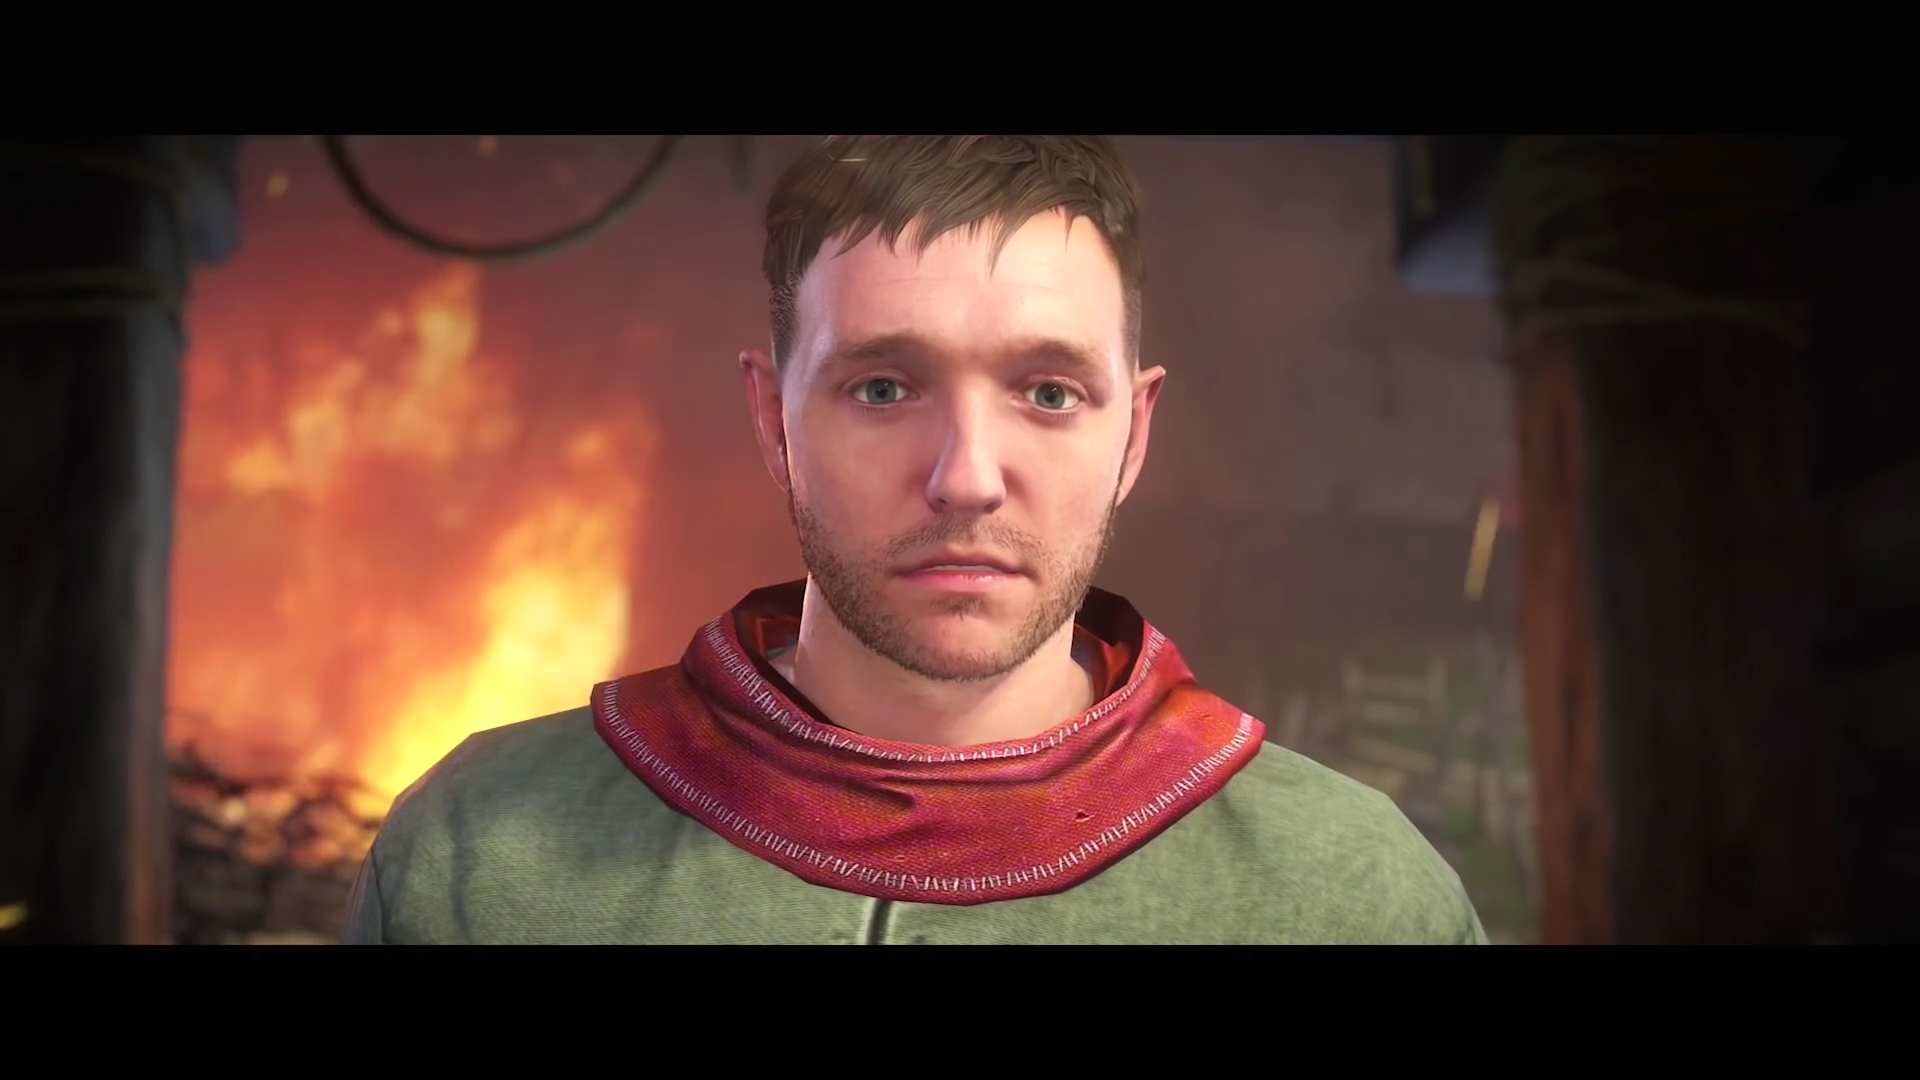 Kingdom Come: Deliverance: Vale a Pena? 5